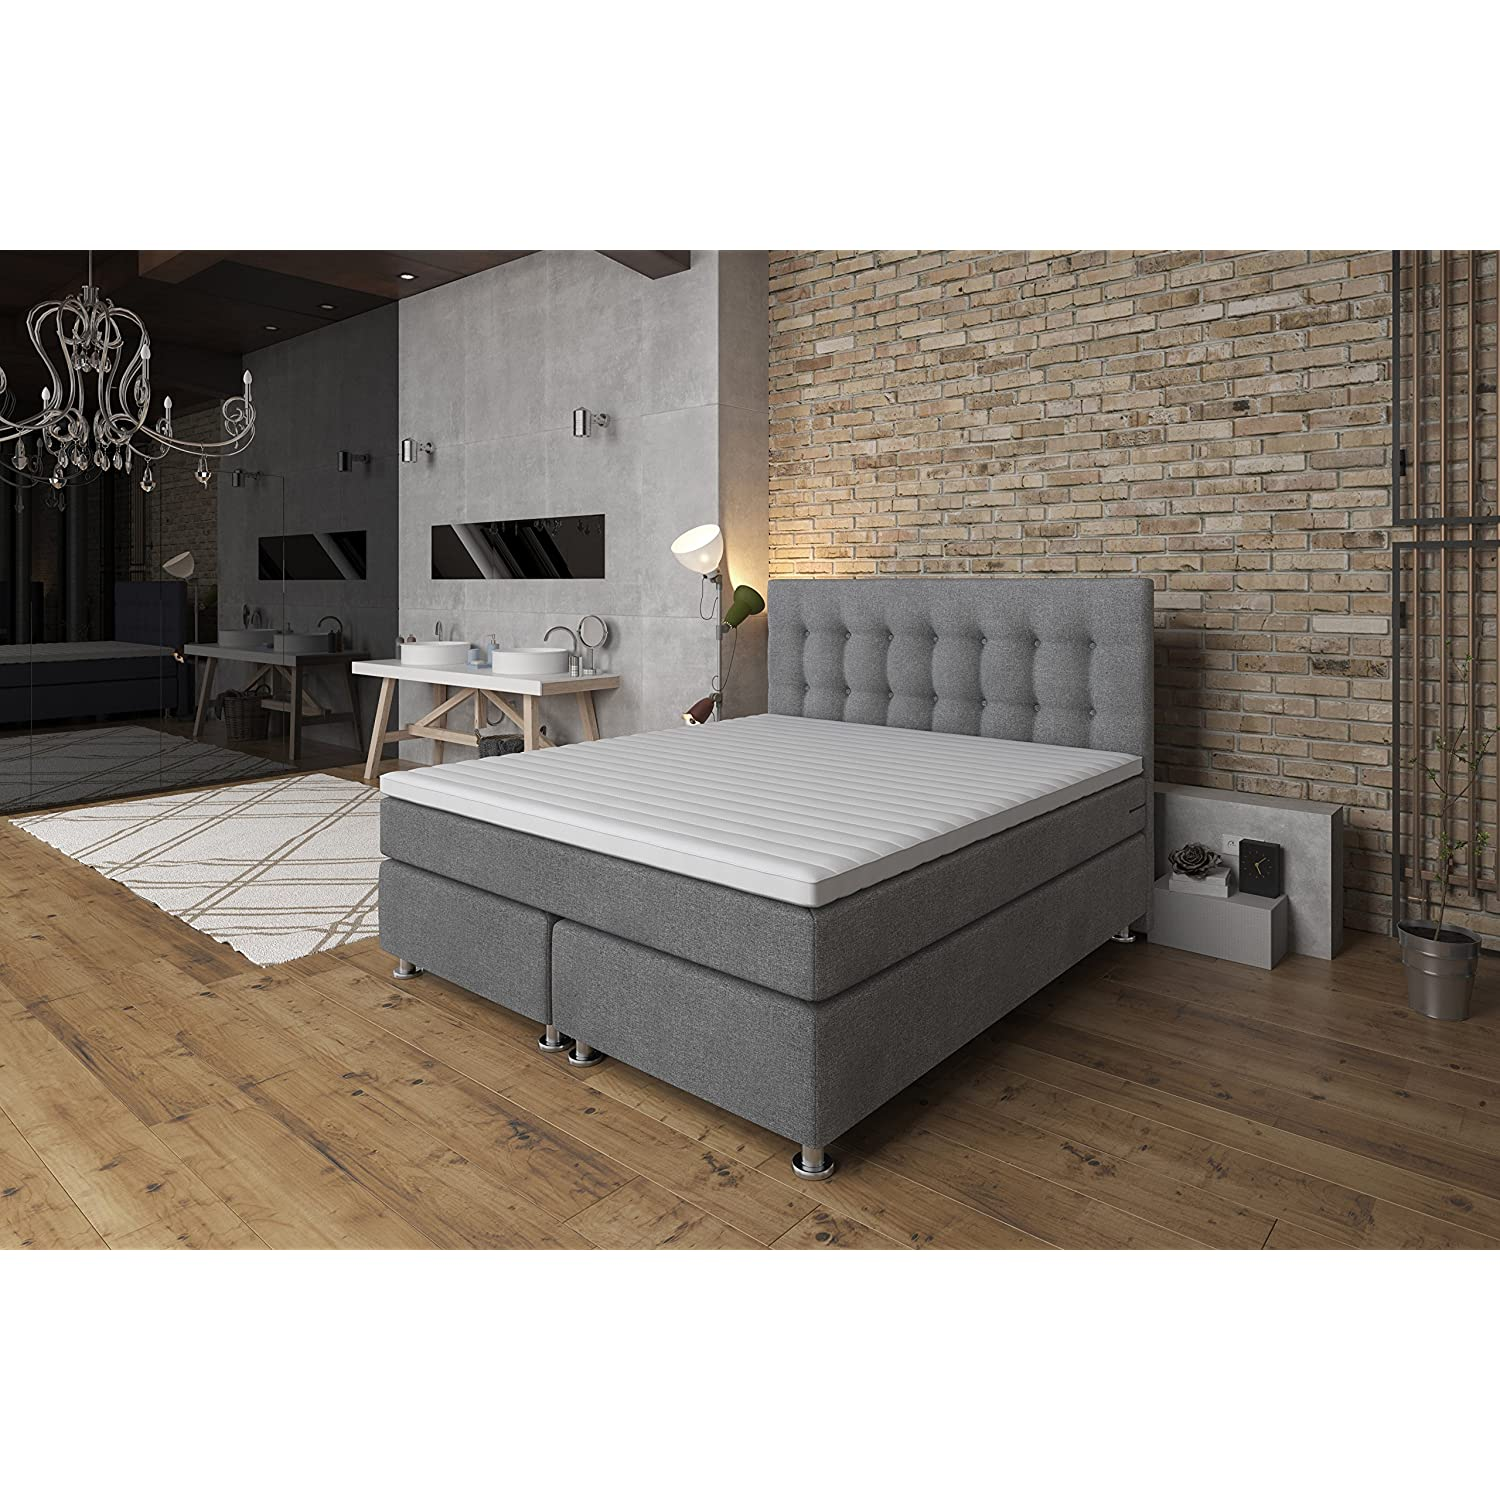 boxspringbett test die besten modelle f r 2018 im vergleich. Black Bedroom Furniture Sets. Home Design Ideas